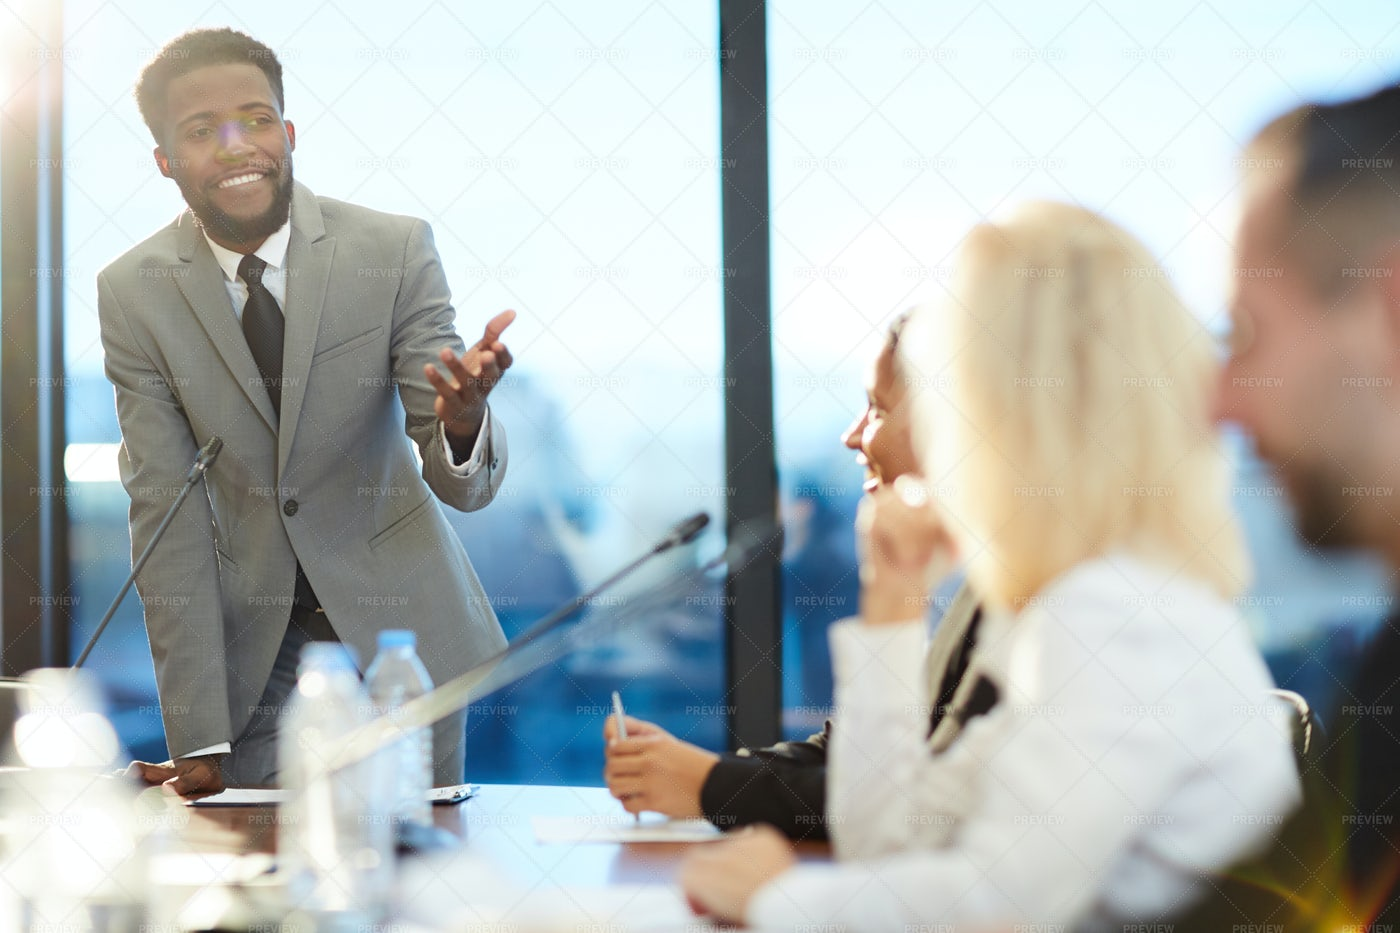 Speaker In Front Of Audience: Stock Photos